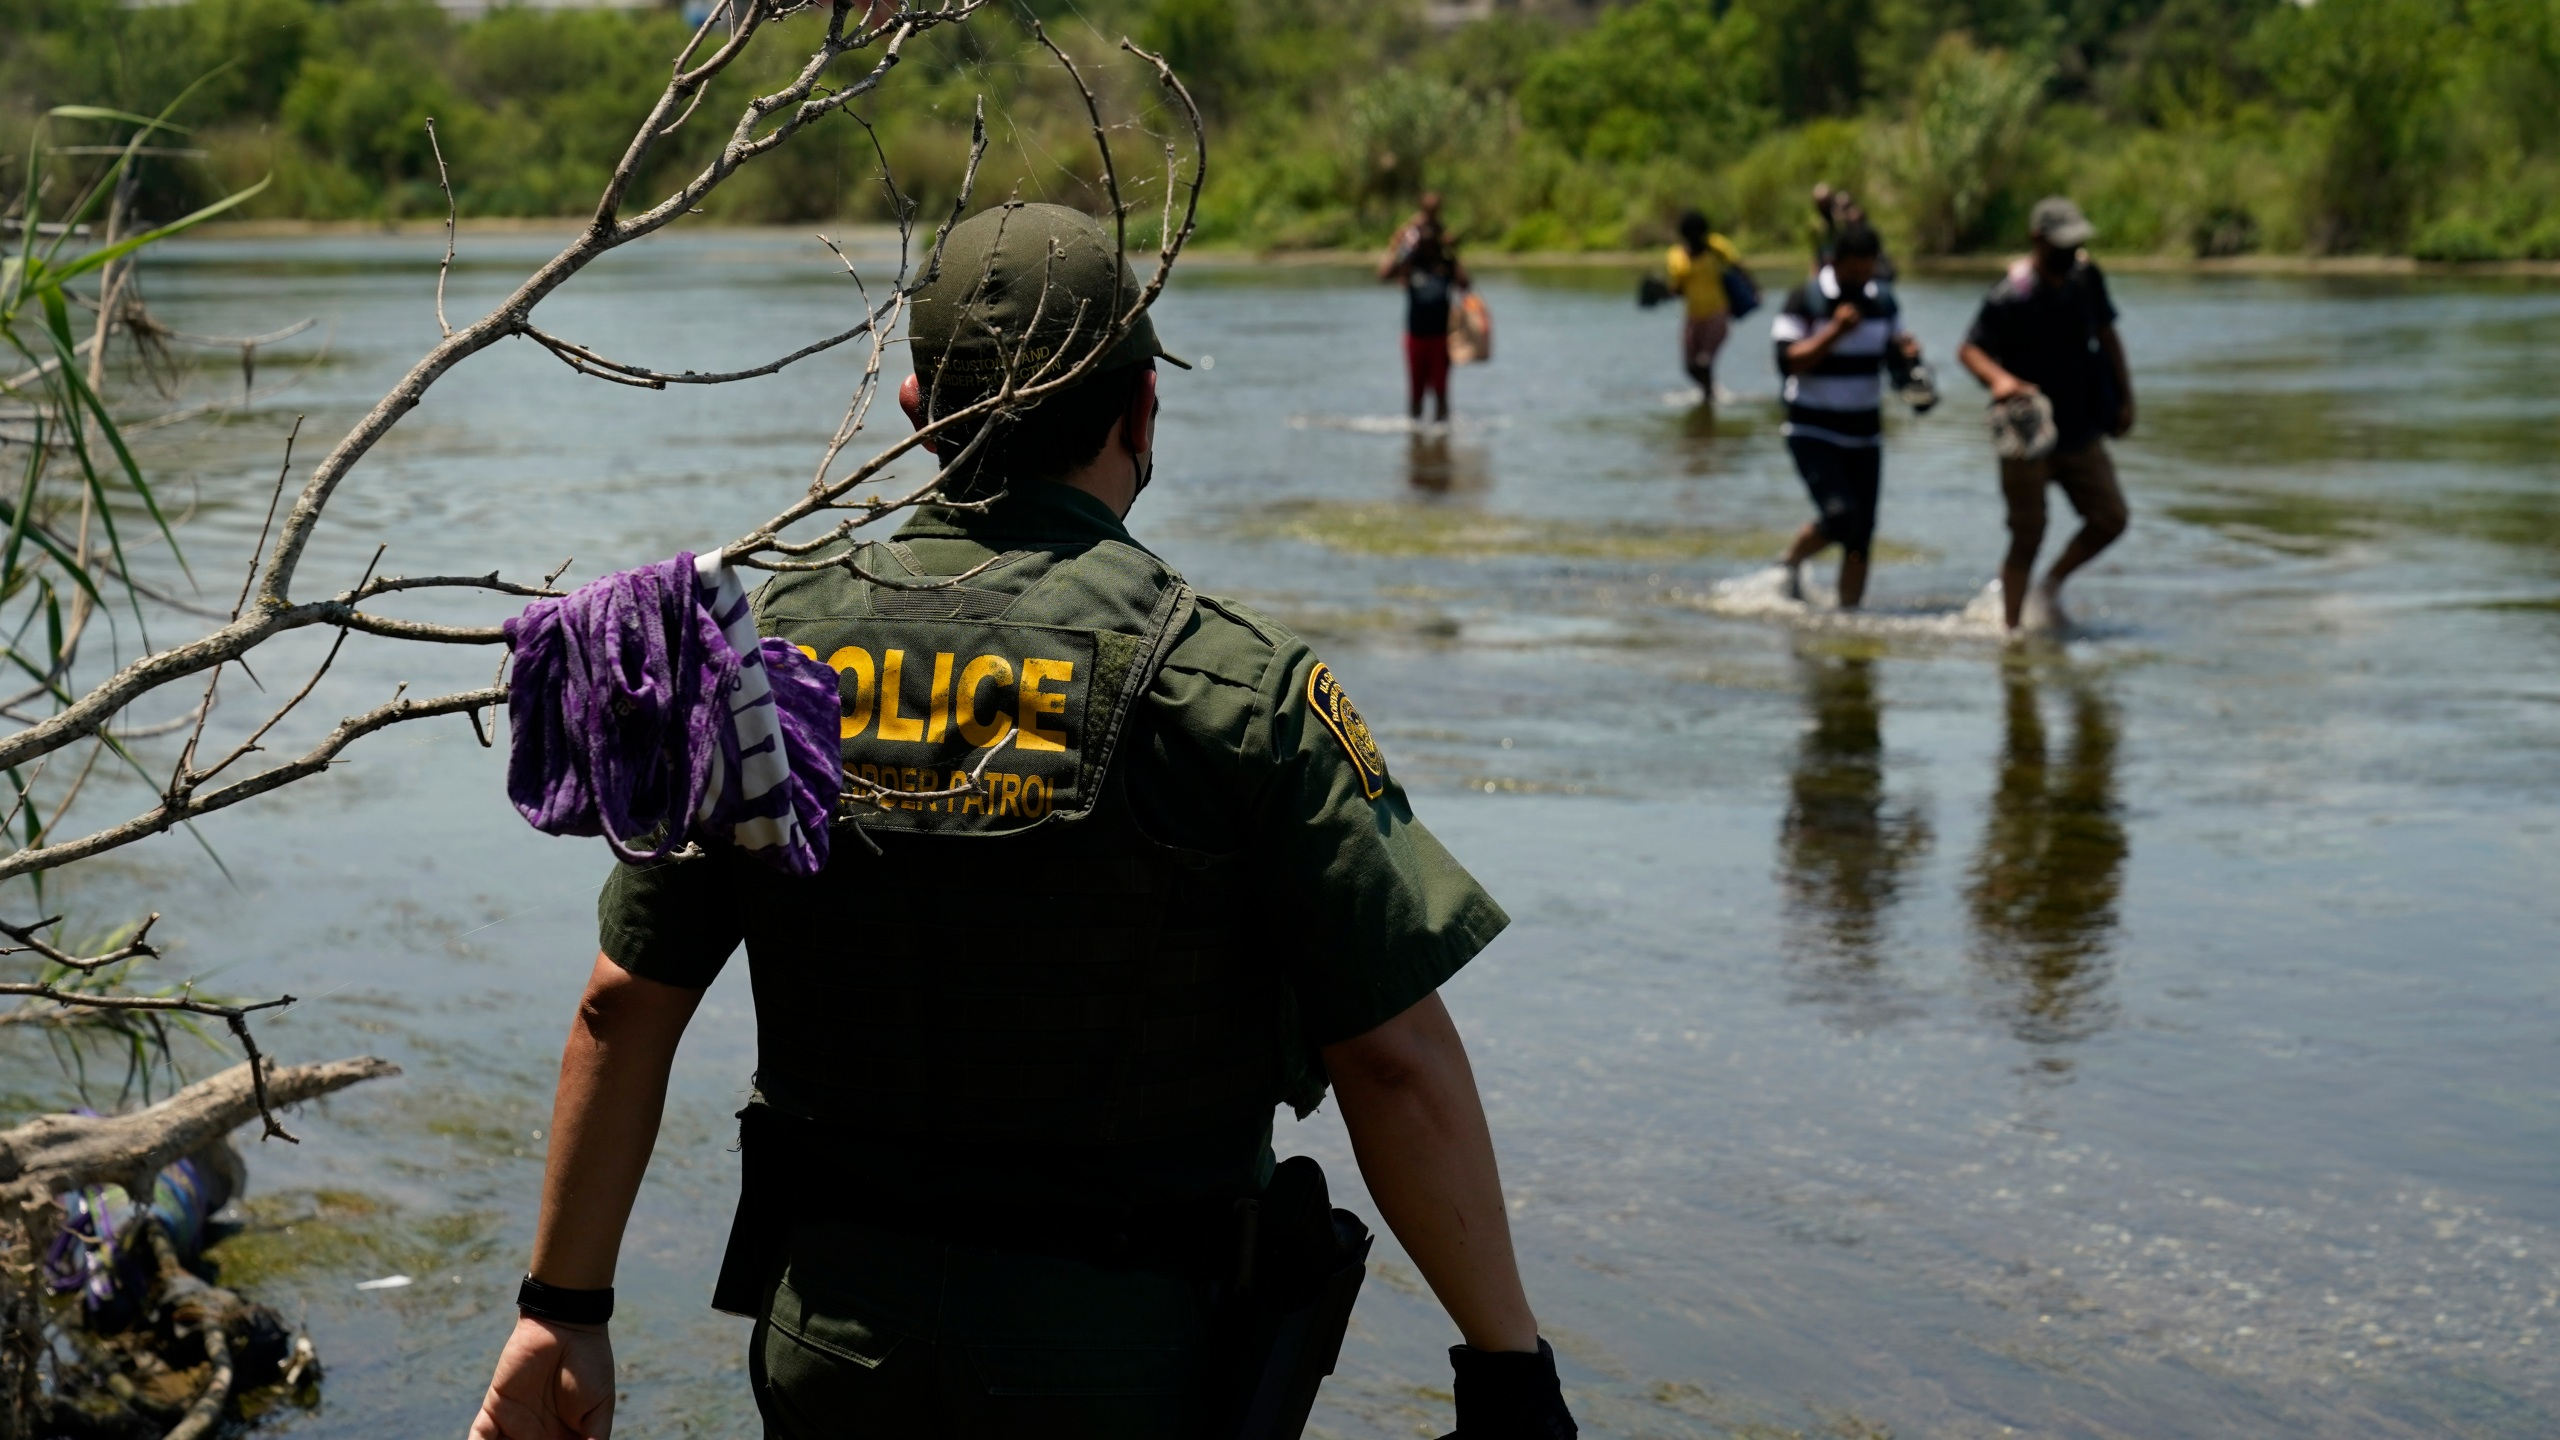 In this June 15, 2021, file photo, a Border Patrol agent watches as a group of migrants walk across the Rio Grande on their way to turning themselves in upon crossing the U.S.-Mexico border in Del Rio, Texas. A Justice Department attorney says the U.S. Centers for Disease Control and Prevention will issue an order this week about treatment of children under a public health order that has prevented migrants from seeking asylum at U.S. borders. (AP Photo/Eric Gay, File)